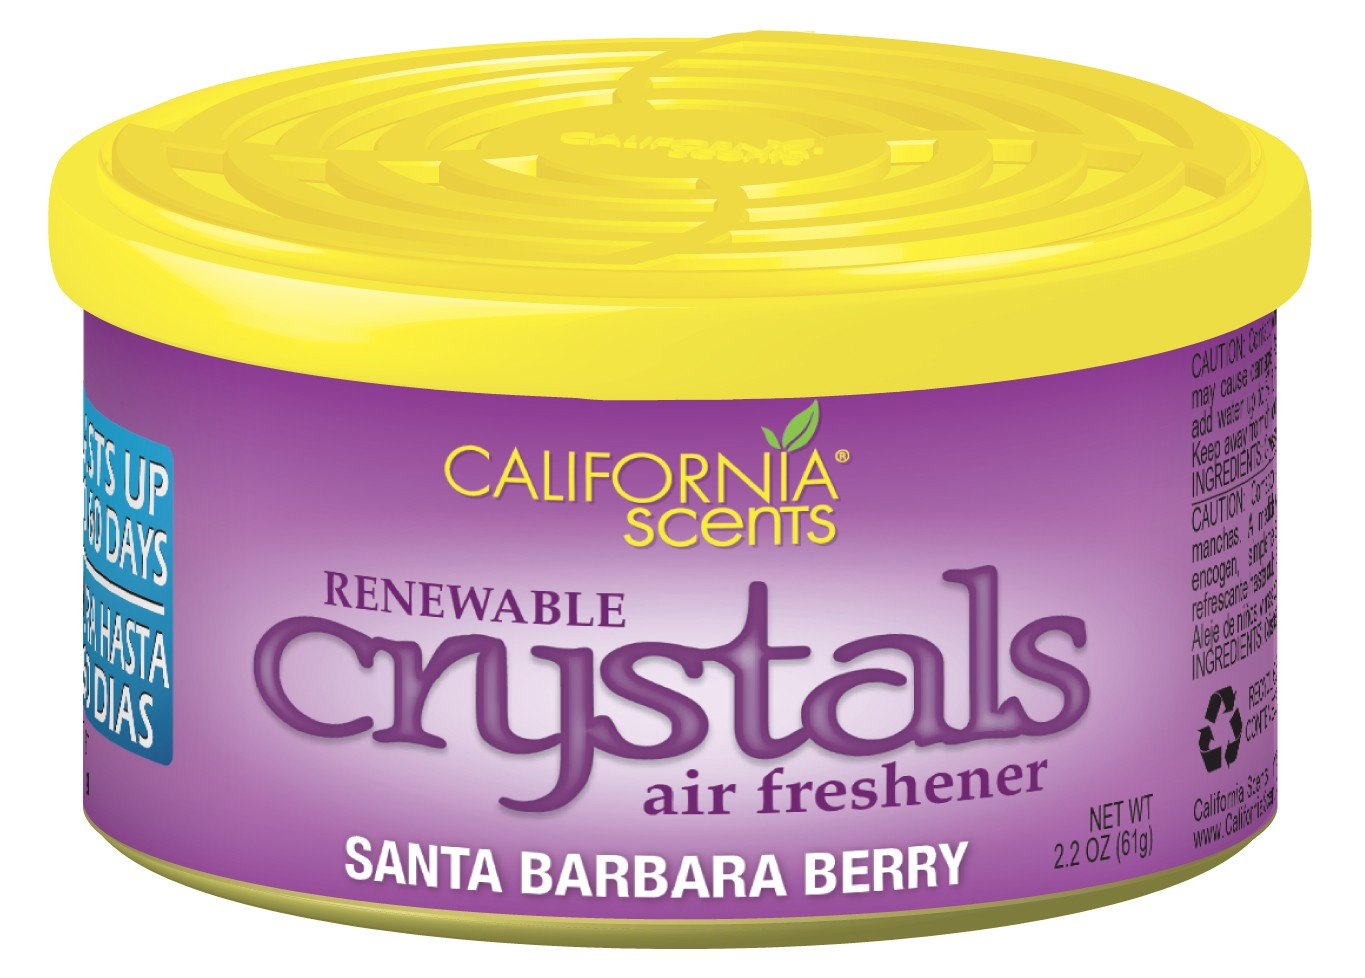 AMBIENTADOR CS CRYSTALS SANTA BARBARA BERRY